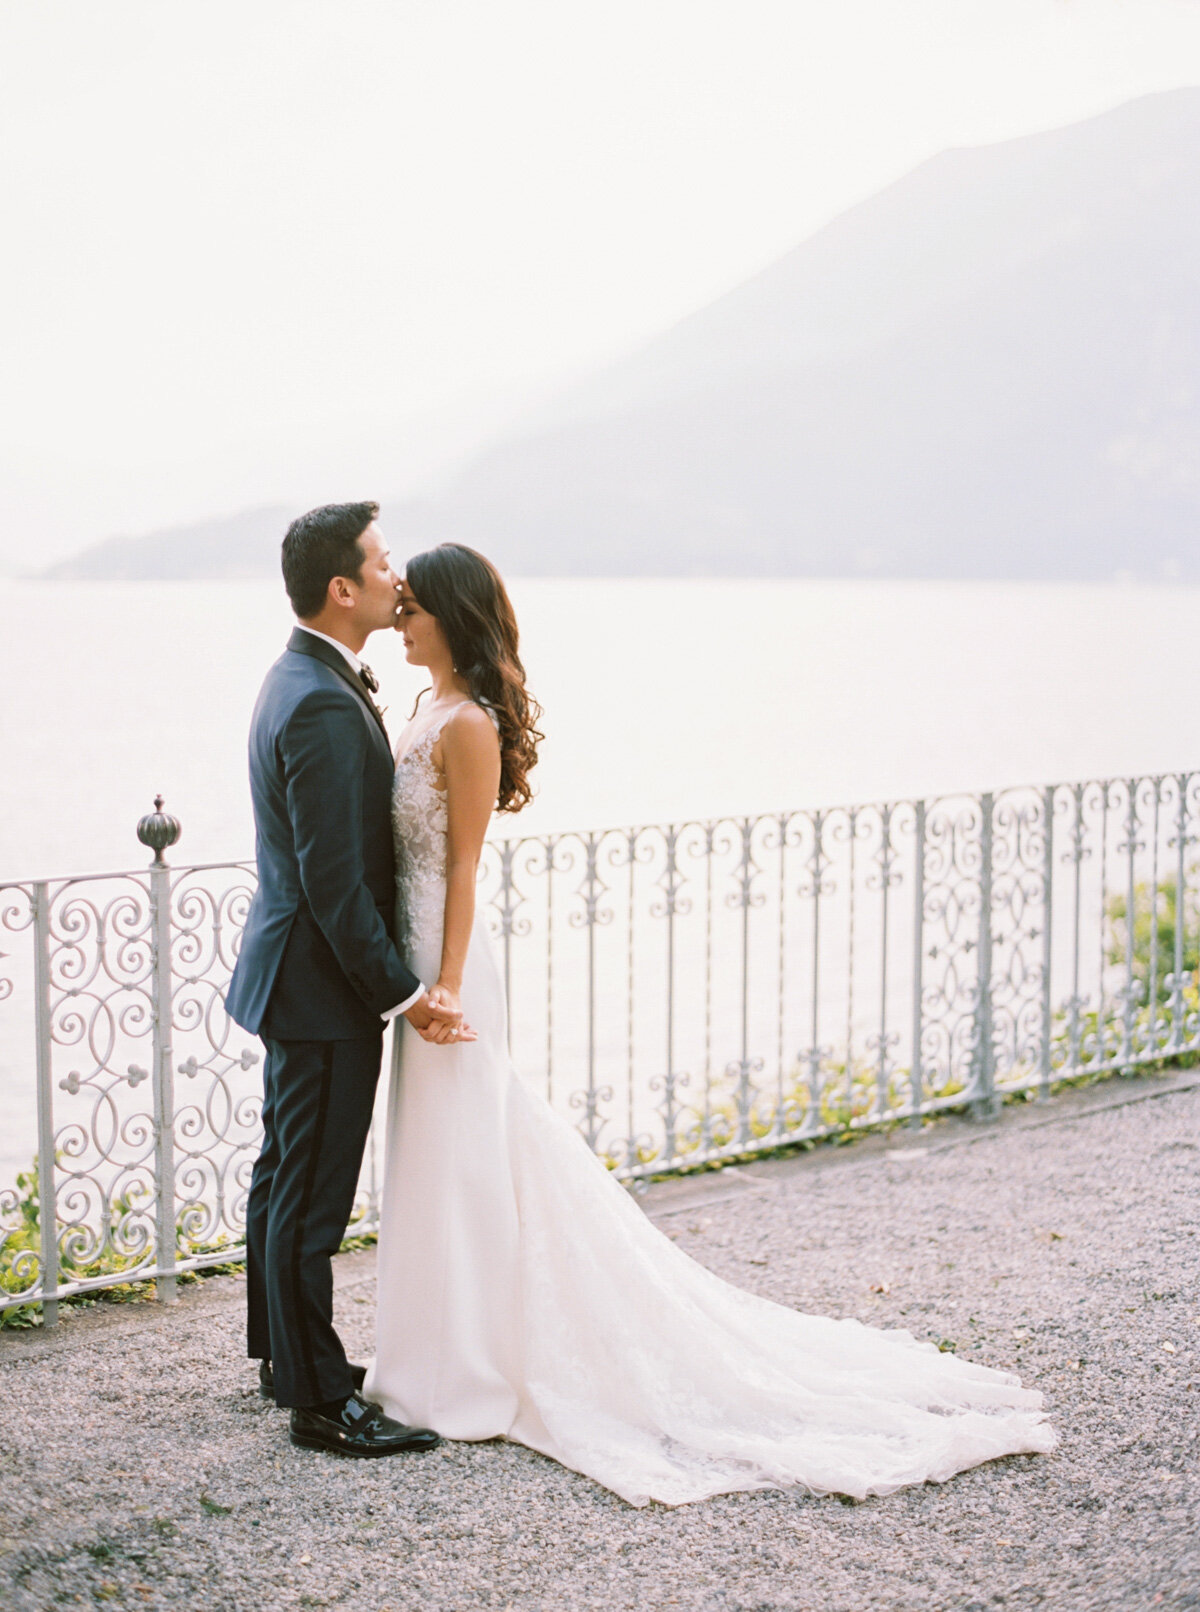 Lake-Como-Villa-Cipressi-Wedding-Katie-Grant-destination-wedding (68 of 93).jpg